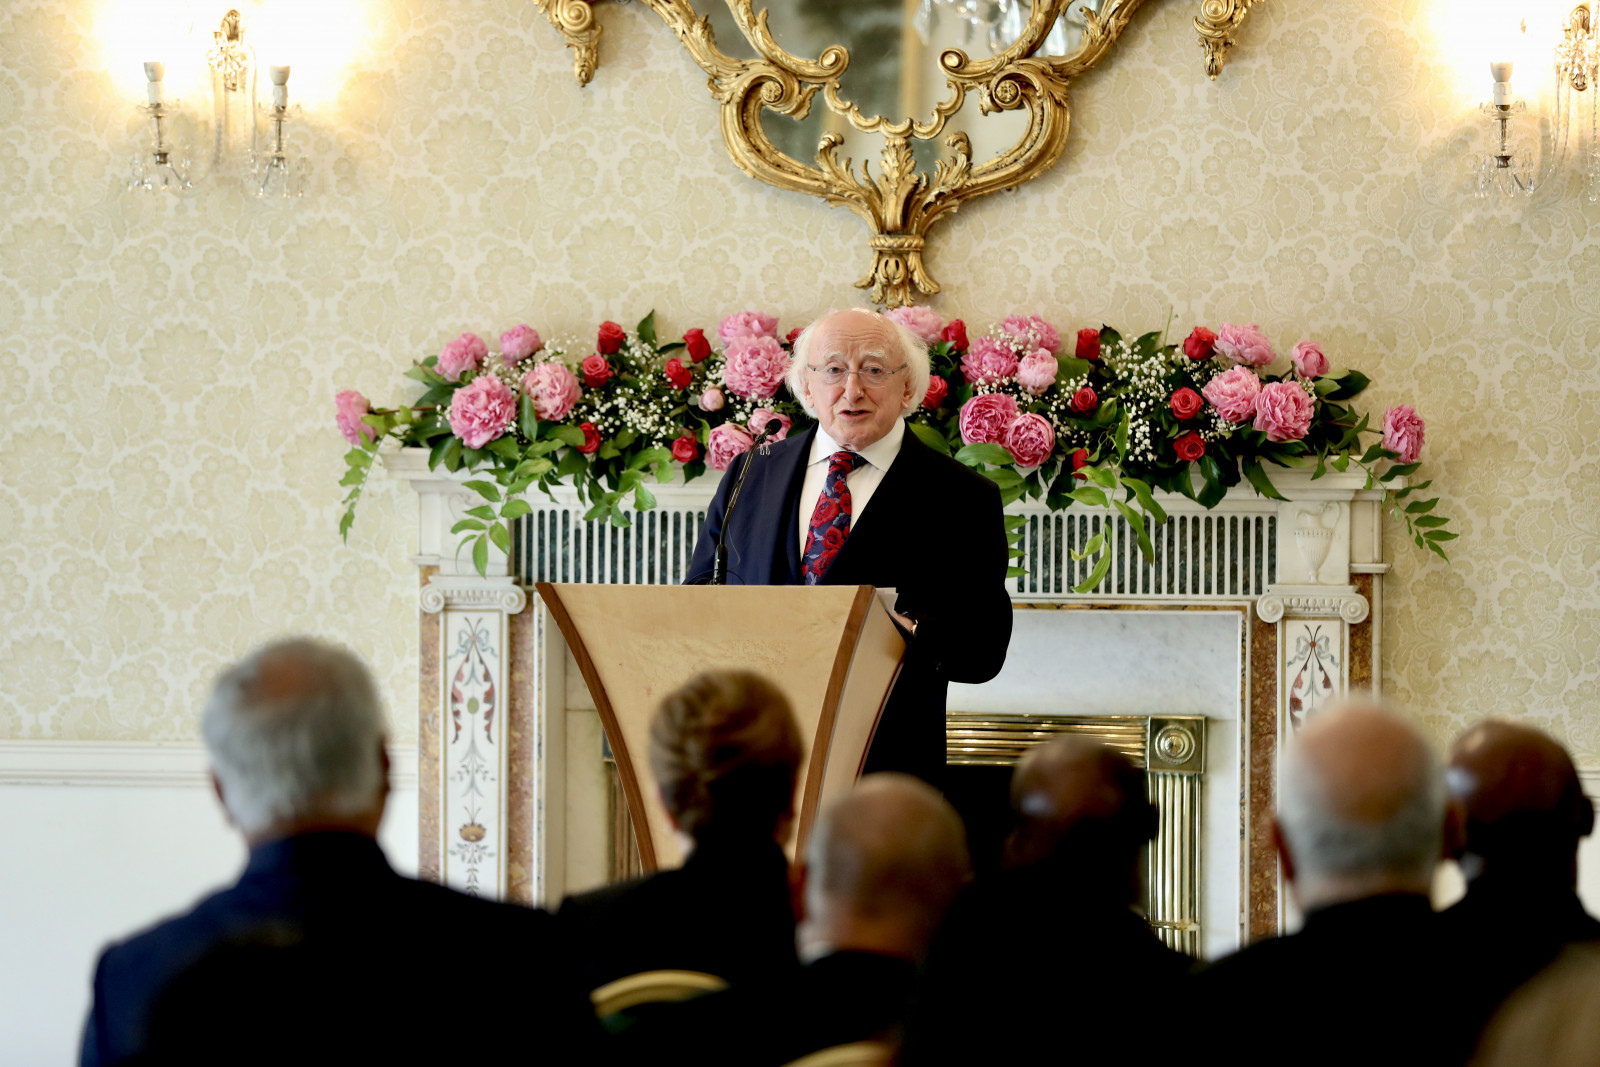 Statement from President Higgins